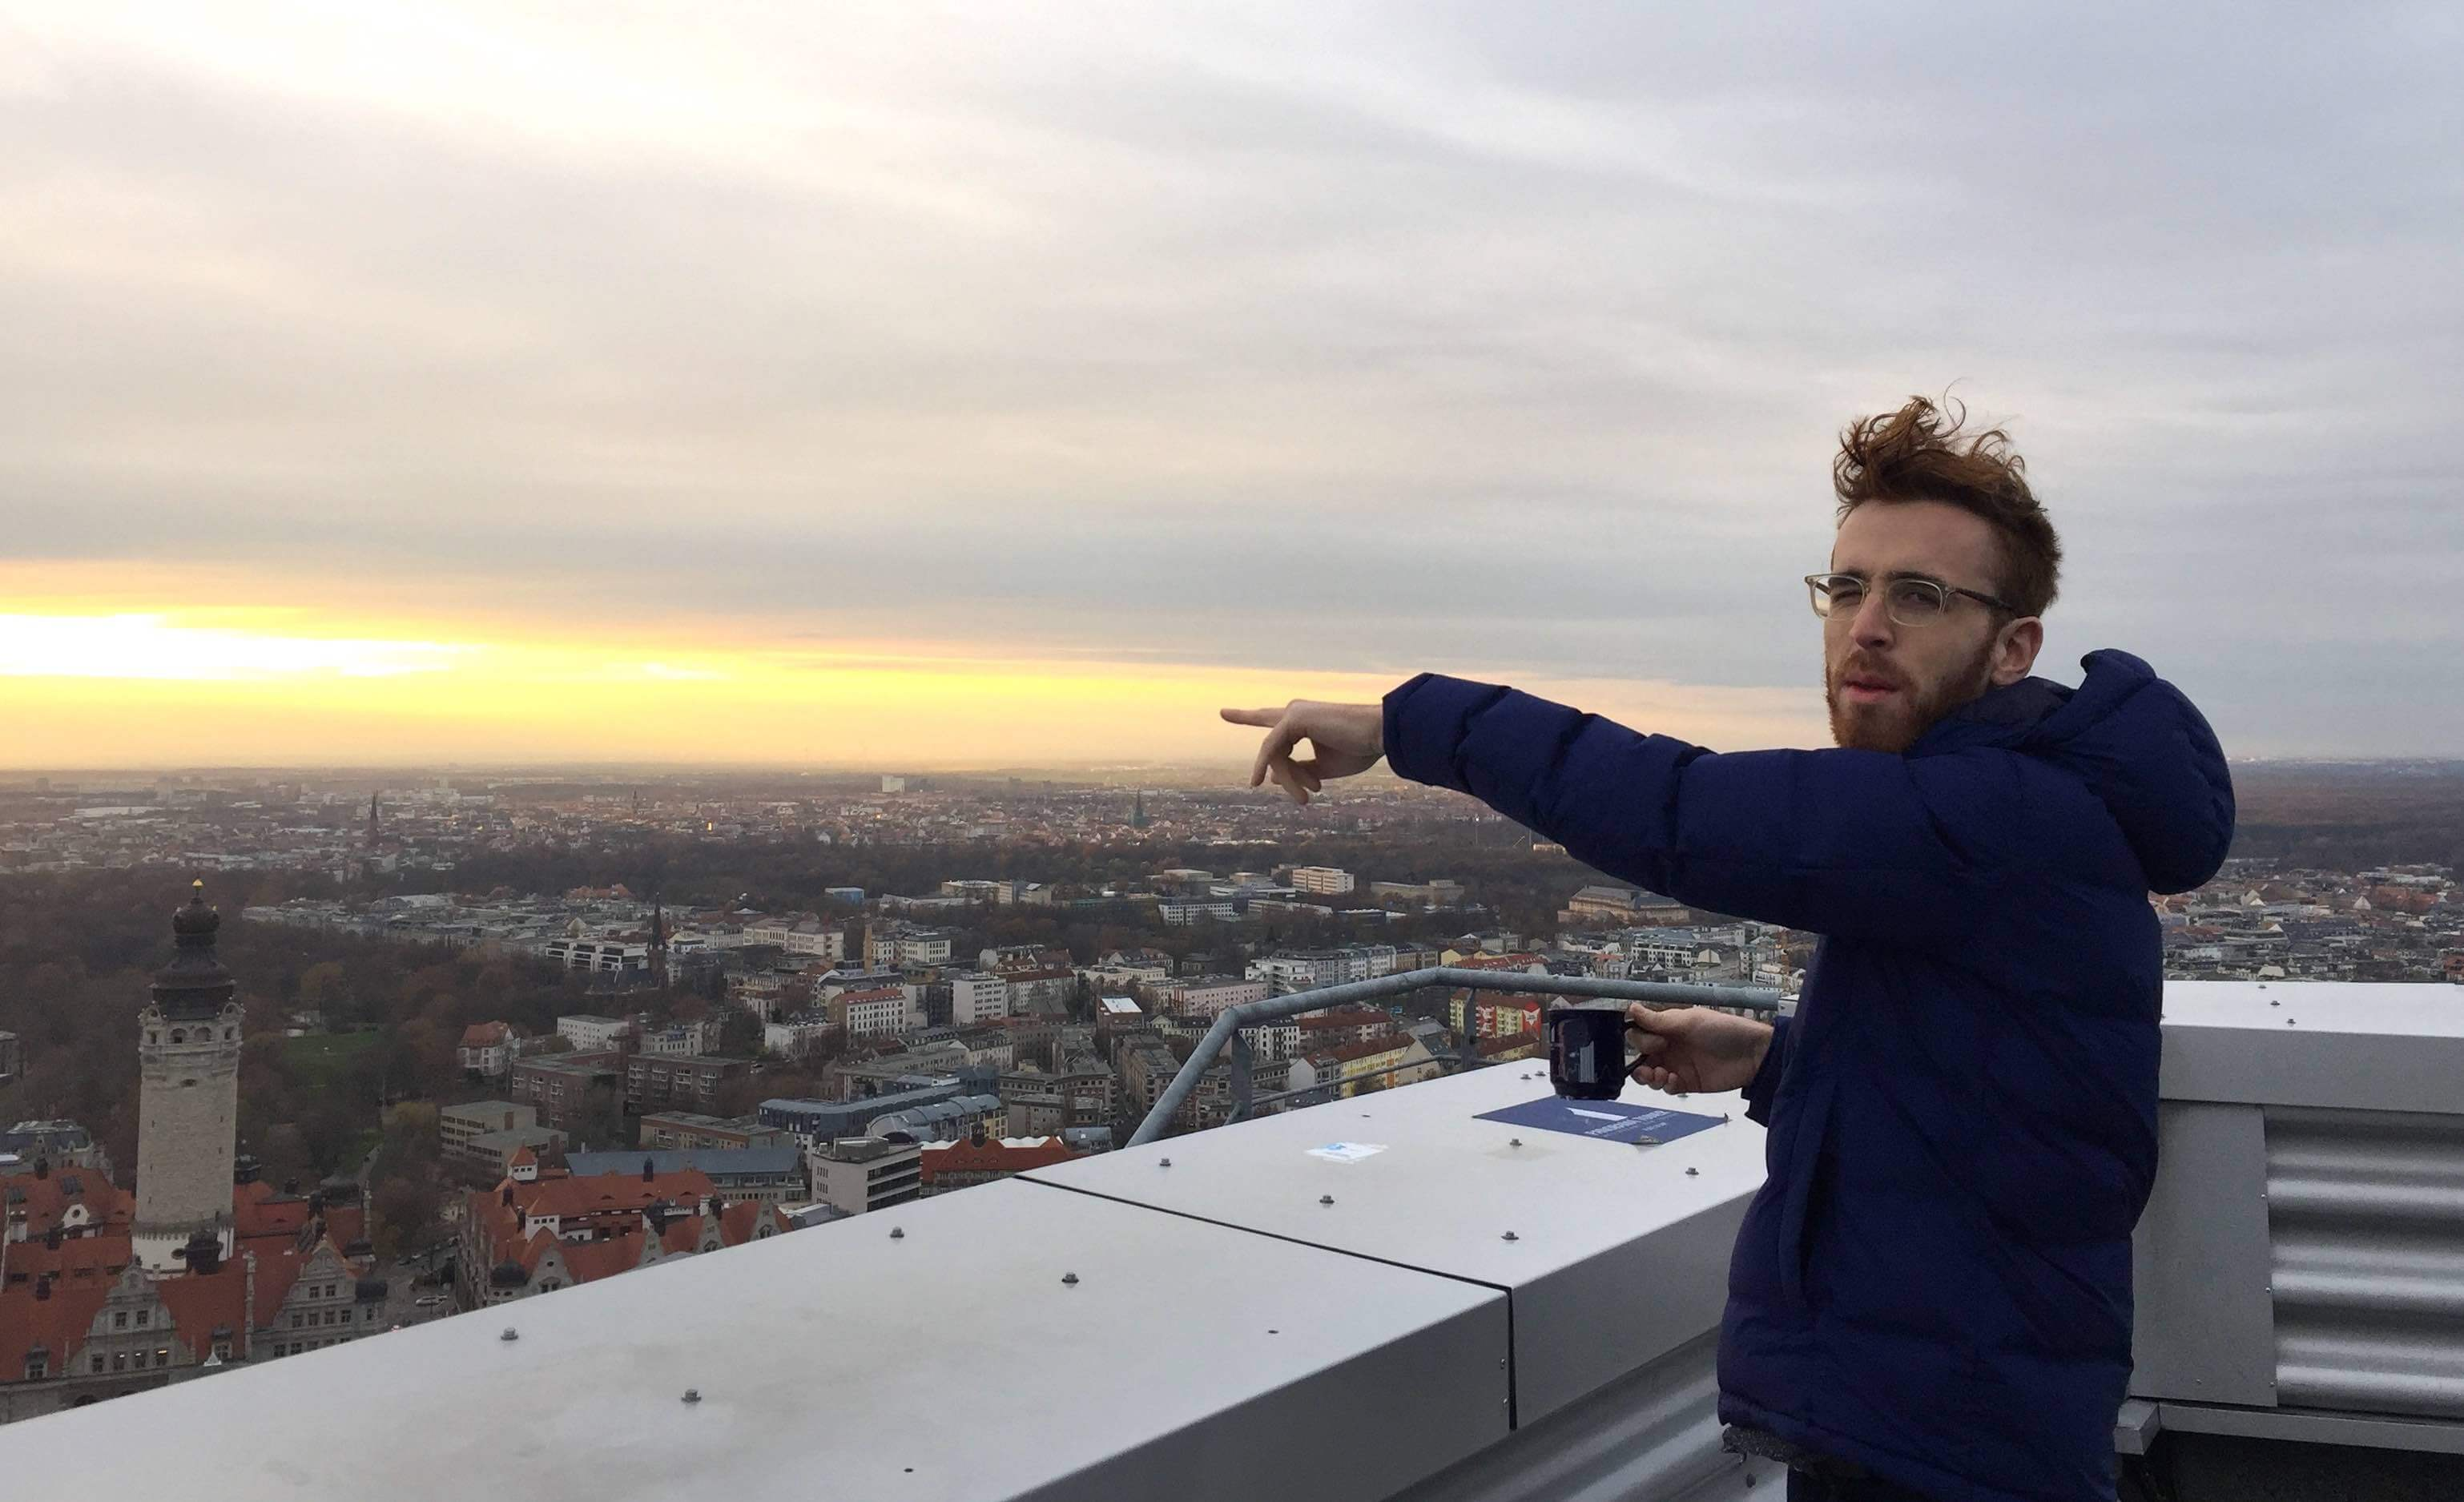 photo of me pointing at a random place